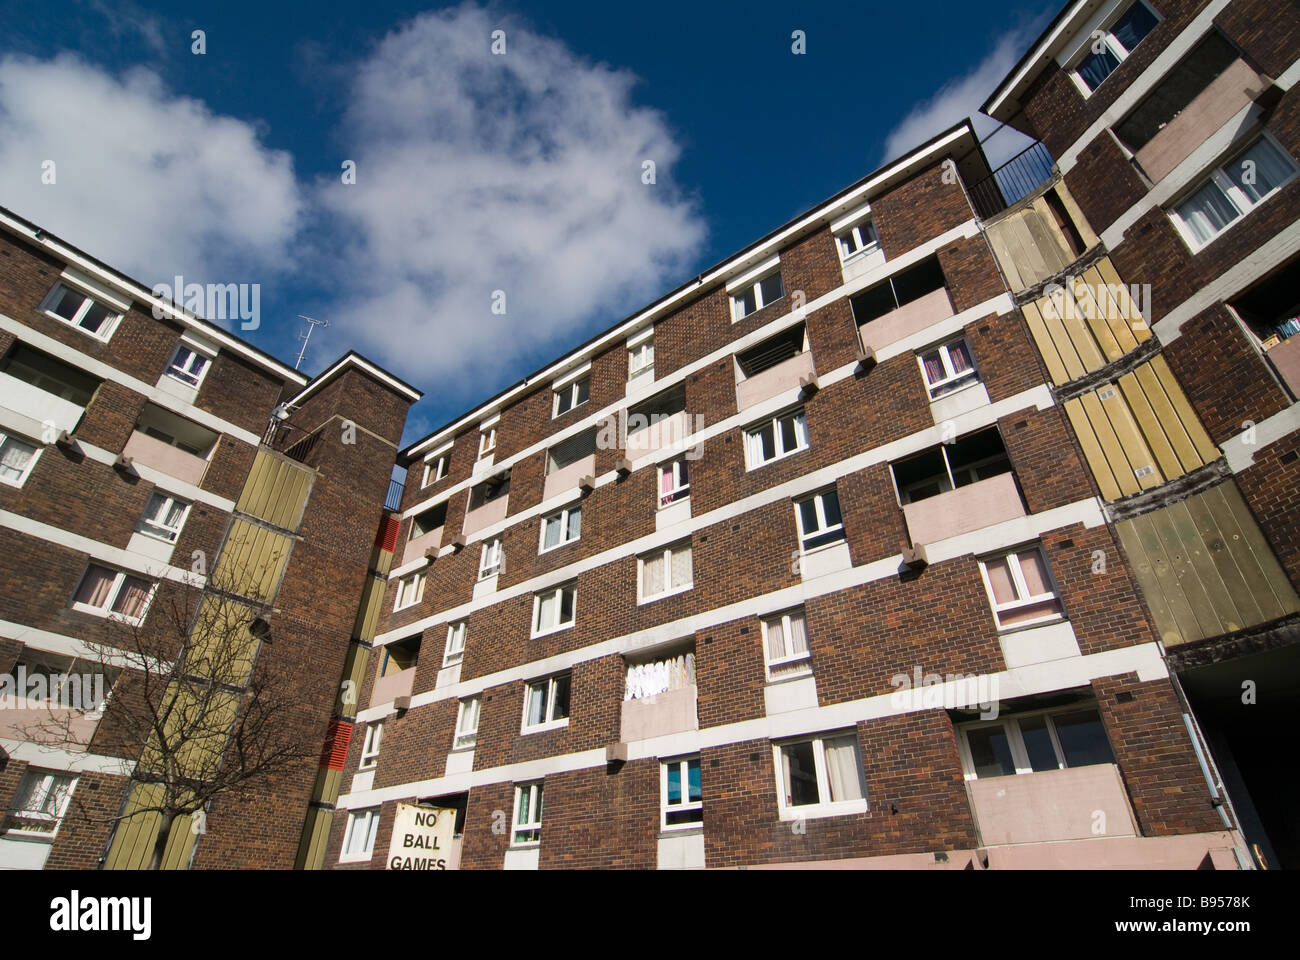 photograph of high rise tenement social housing - Stock Image